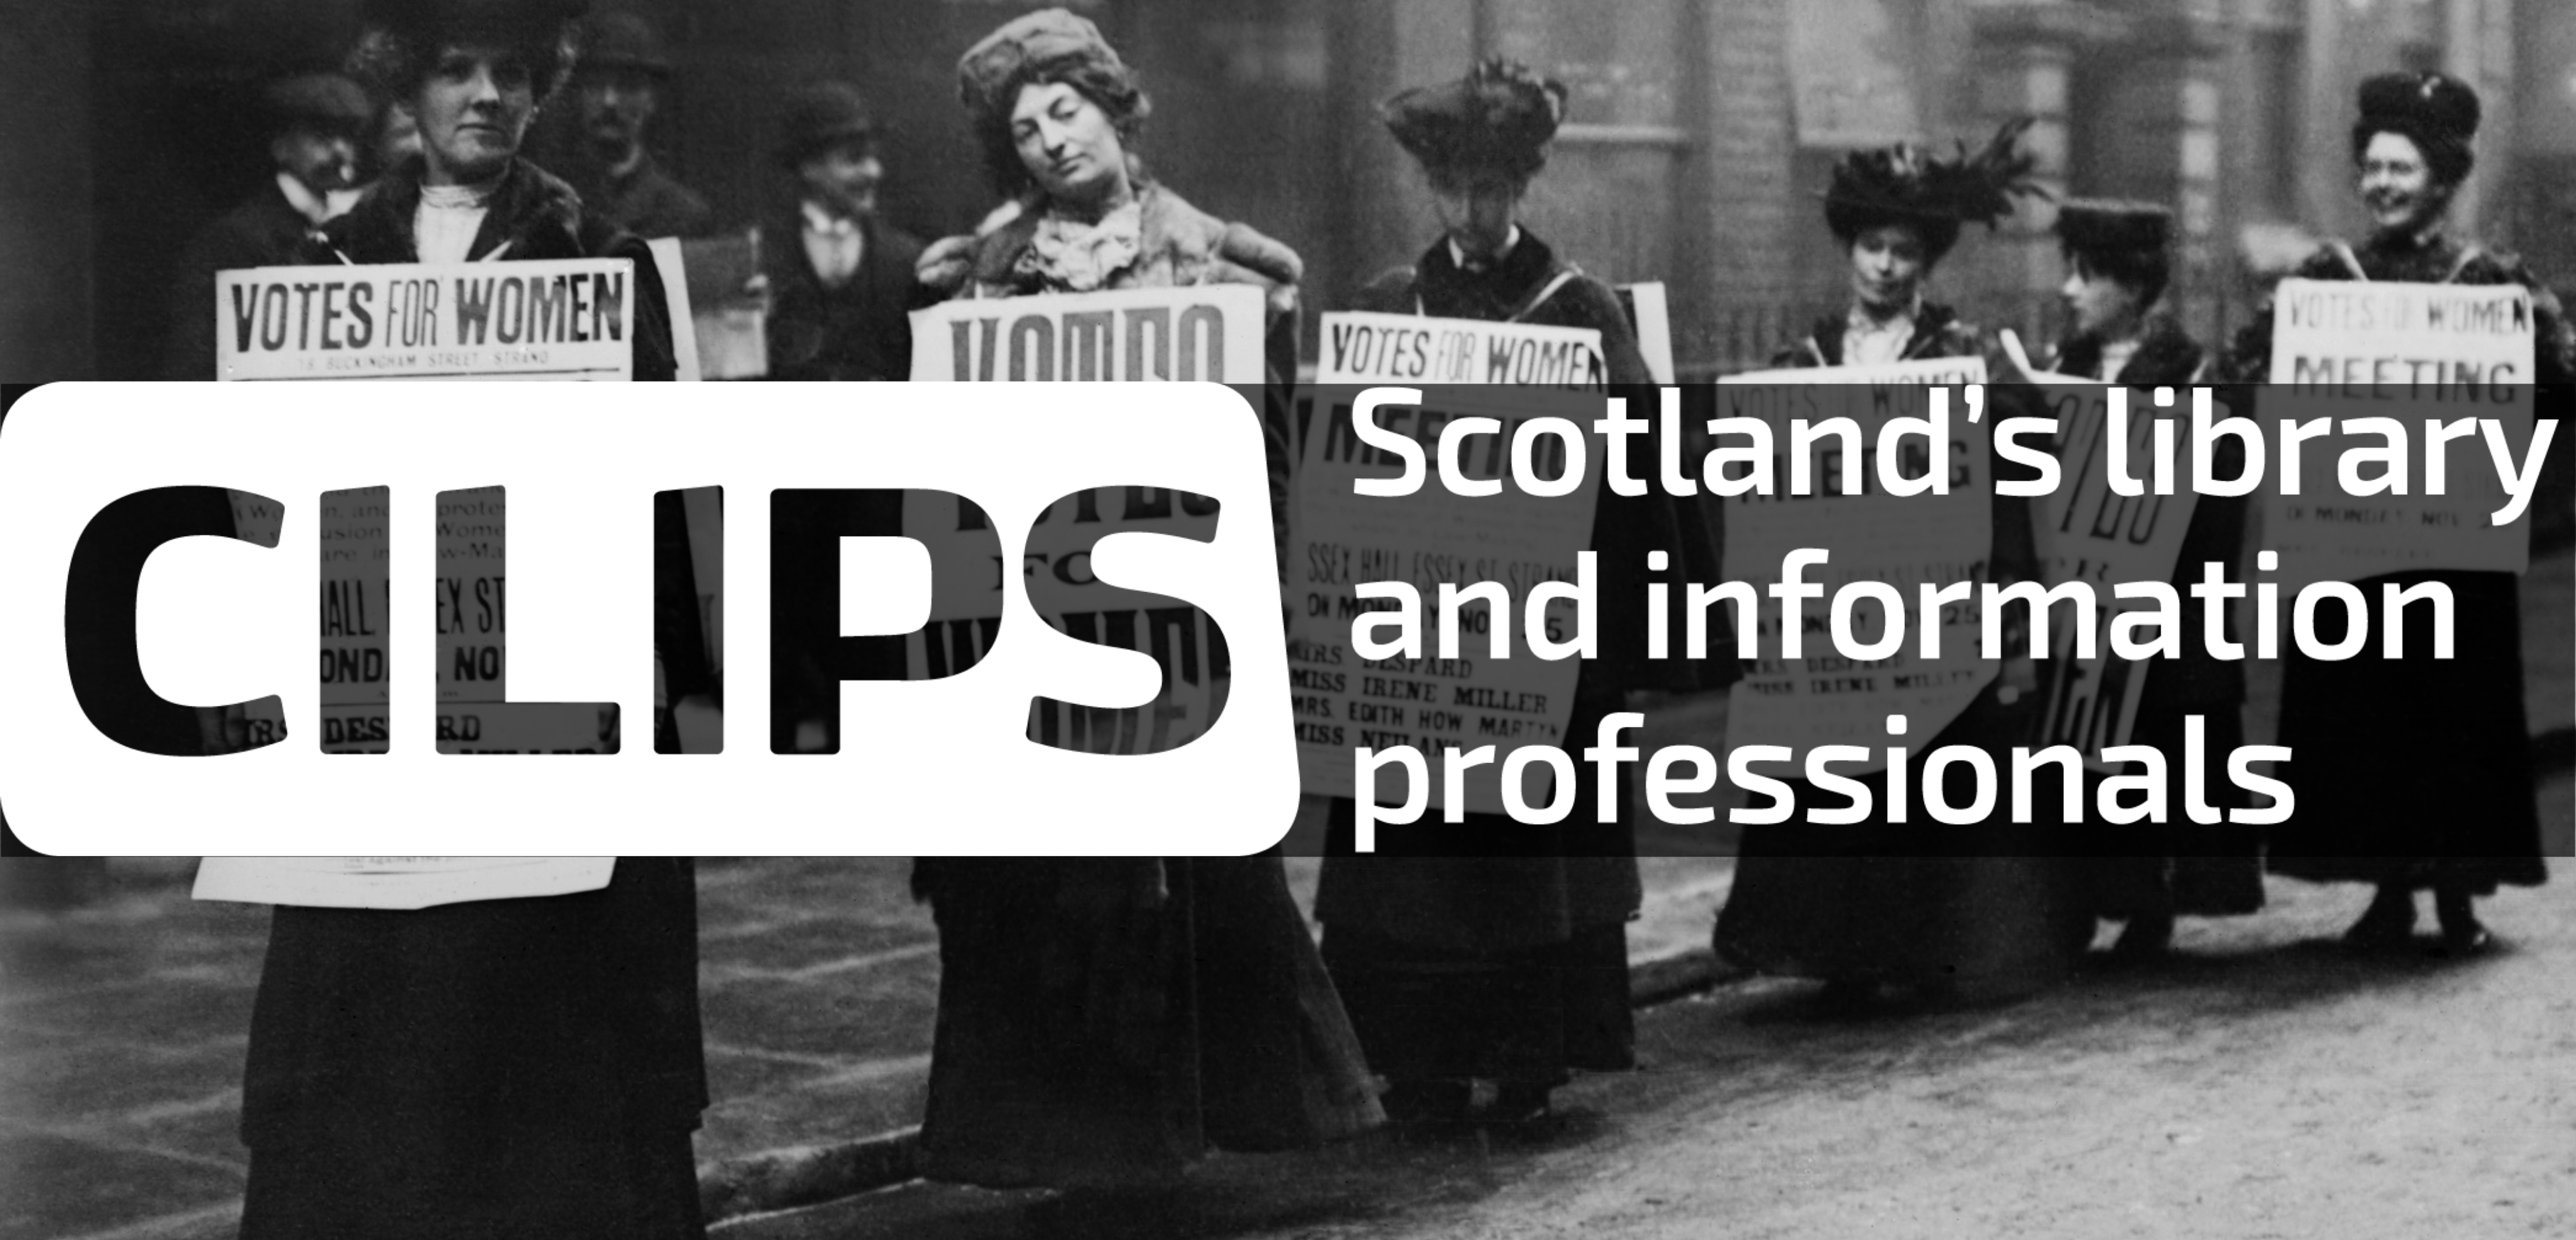 the CILIPS logo 'Scotland's library and information professionals' with a background photo of suffrage campaigners with 'votes for women' signs